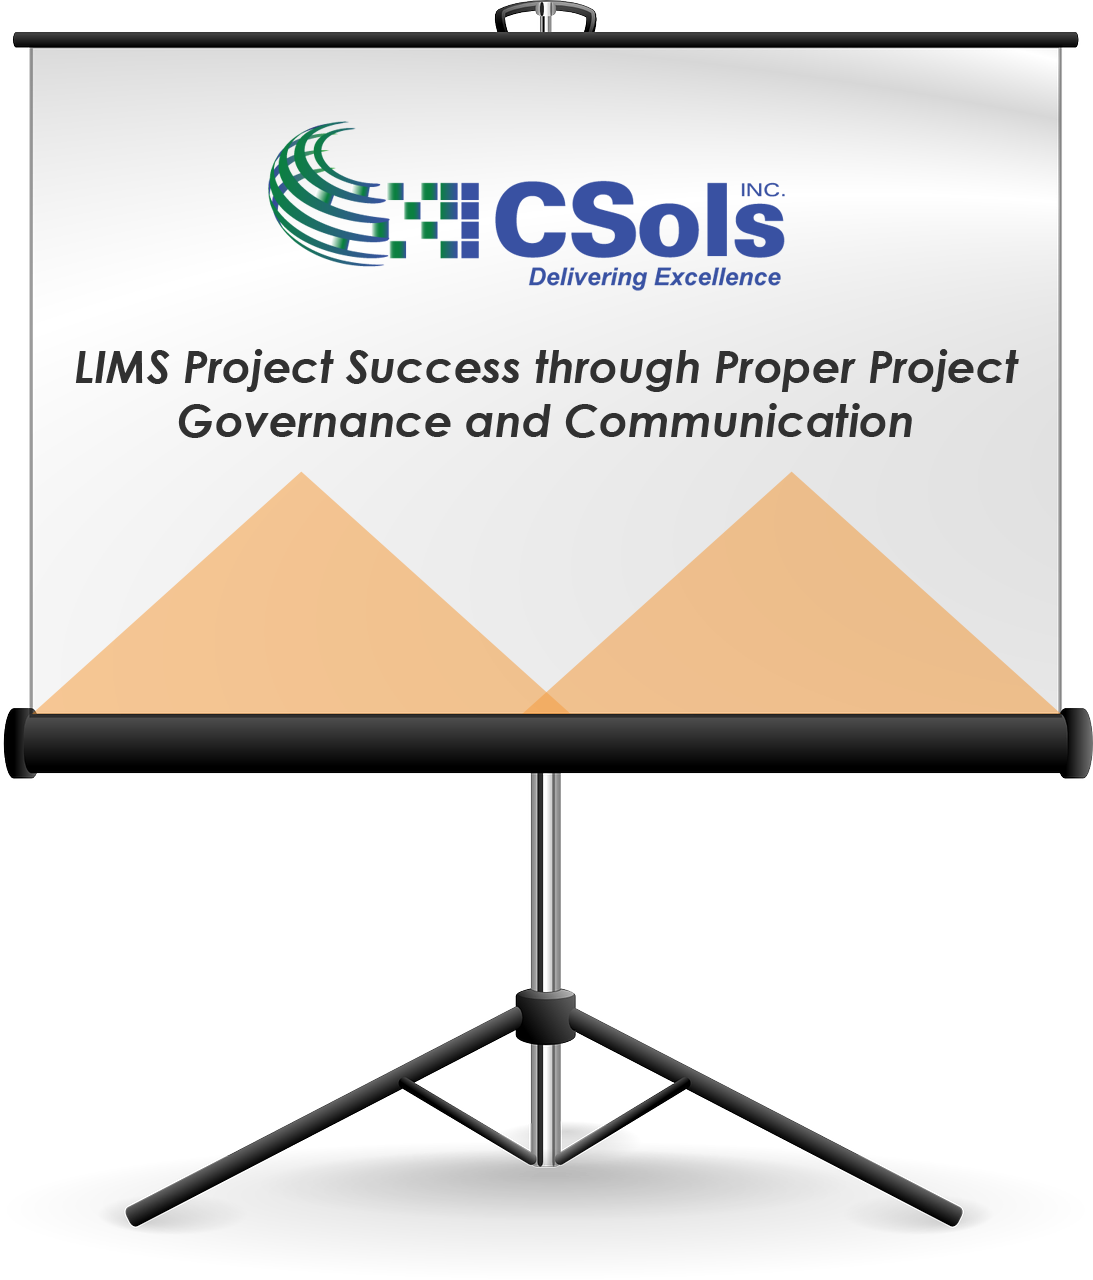 LIMS Project Success through Proper Planning Governance and Communication